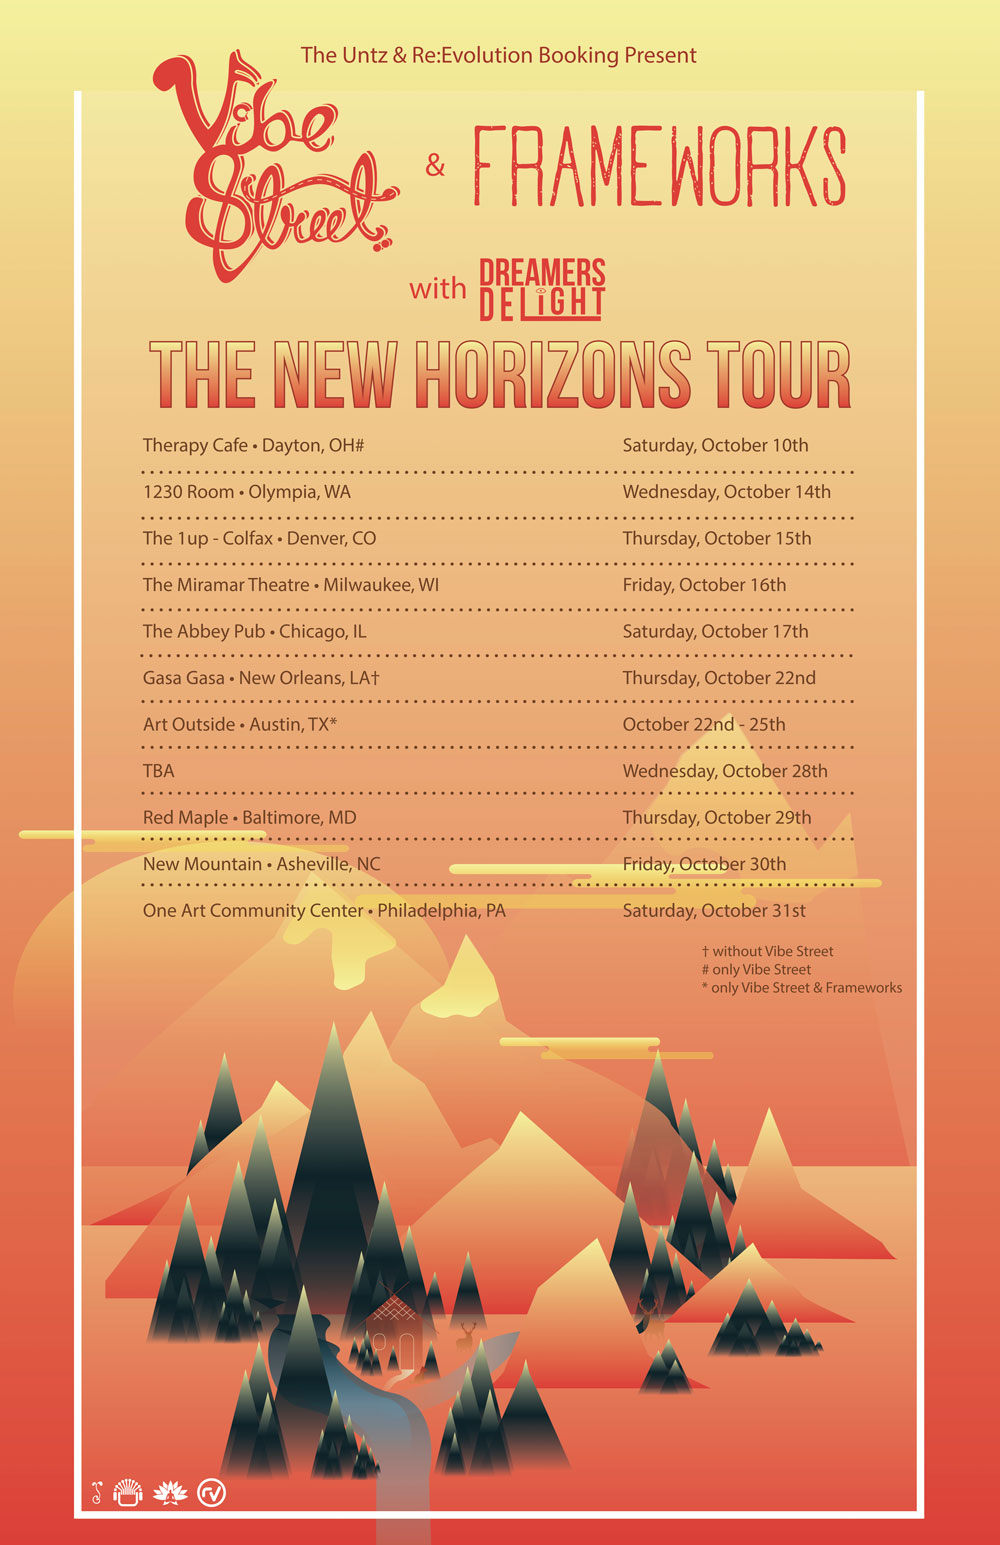 THE NEW HORIZONS TOUR